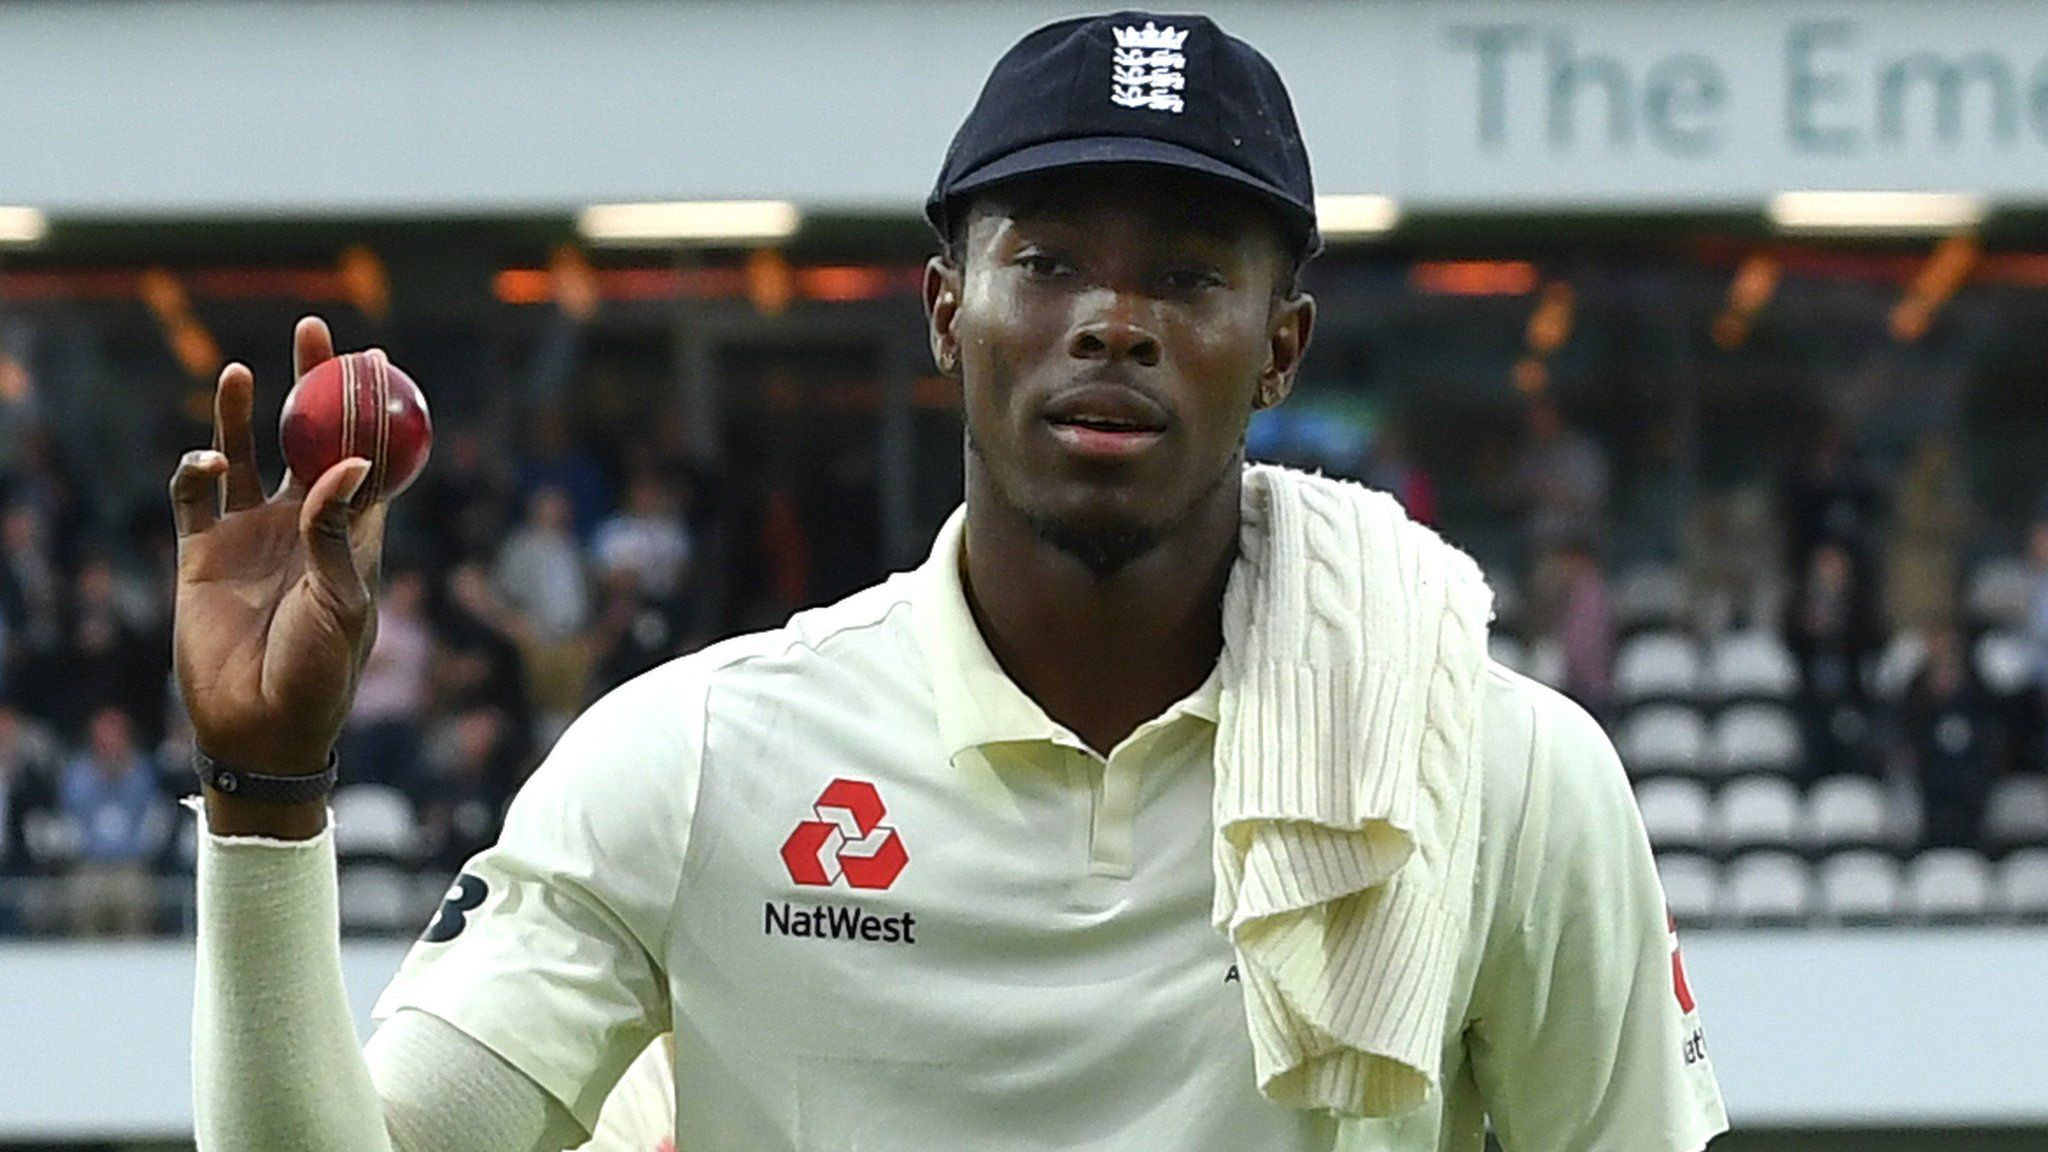 Jofra Archer waiting to watch Naseem Shah after Day 2 as well on the Old Trafford's slow pitch